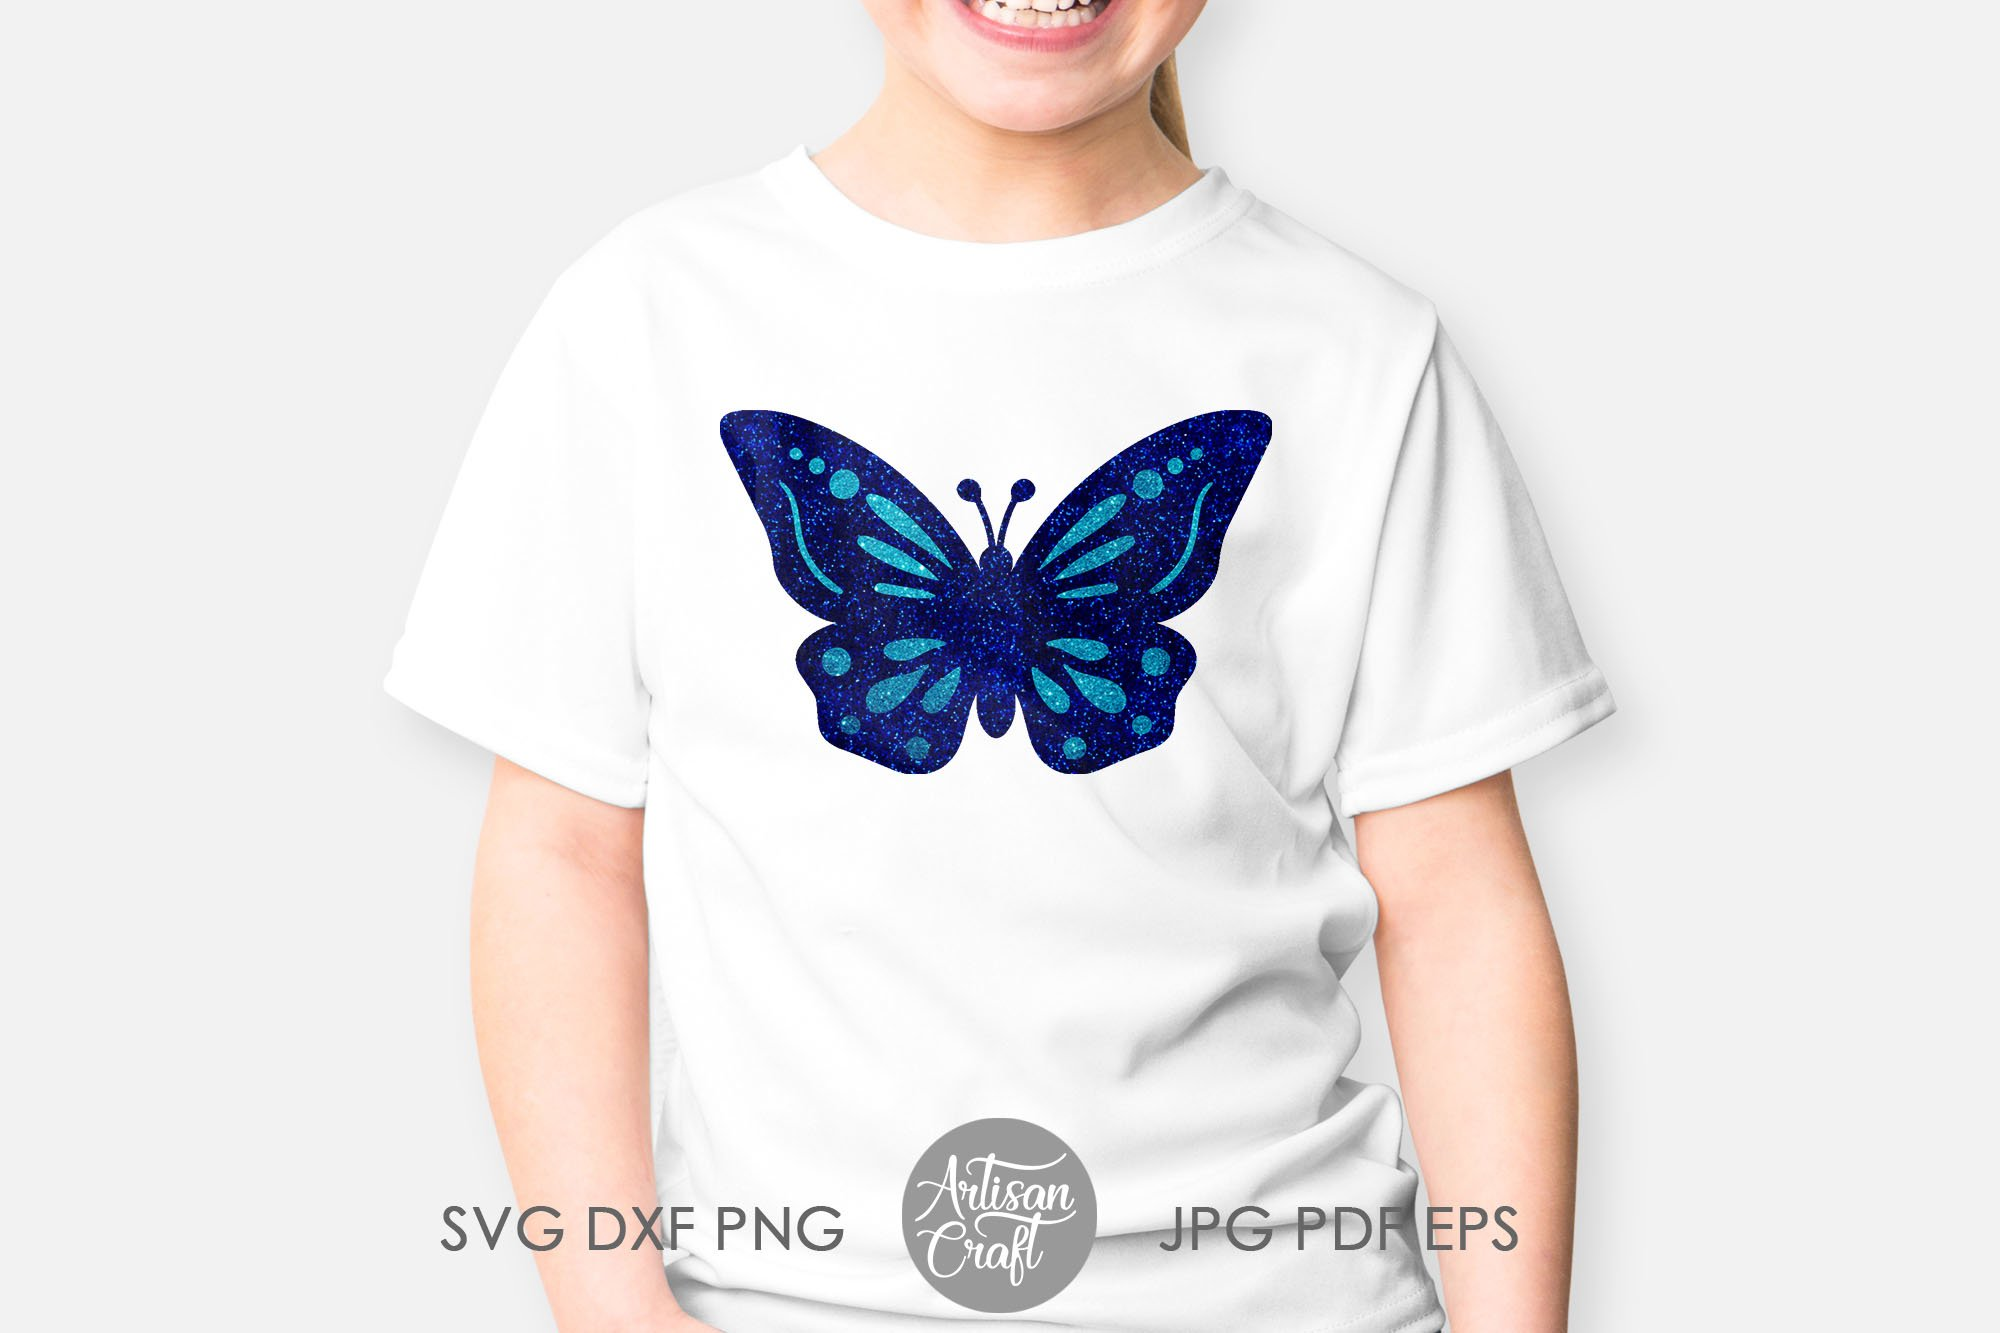 Butterfly clipart, butterfly SVG, cut files, layered svg example image 4